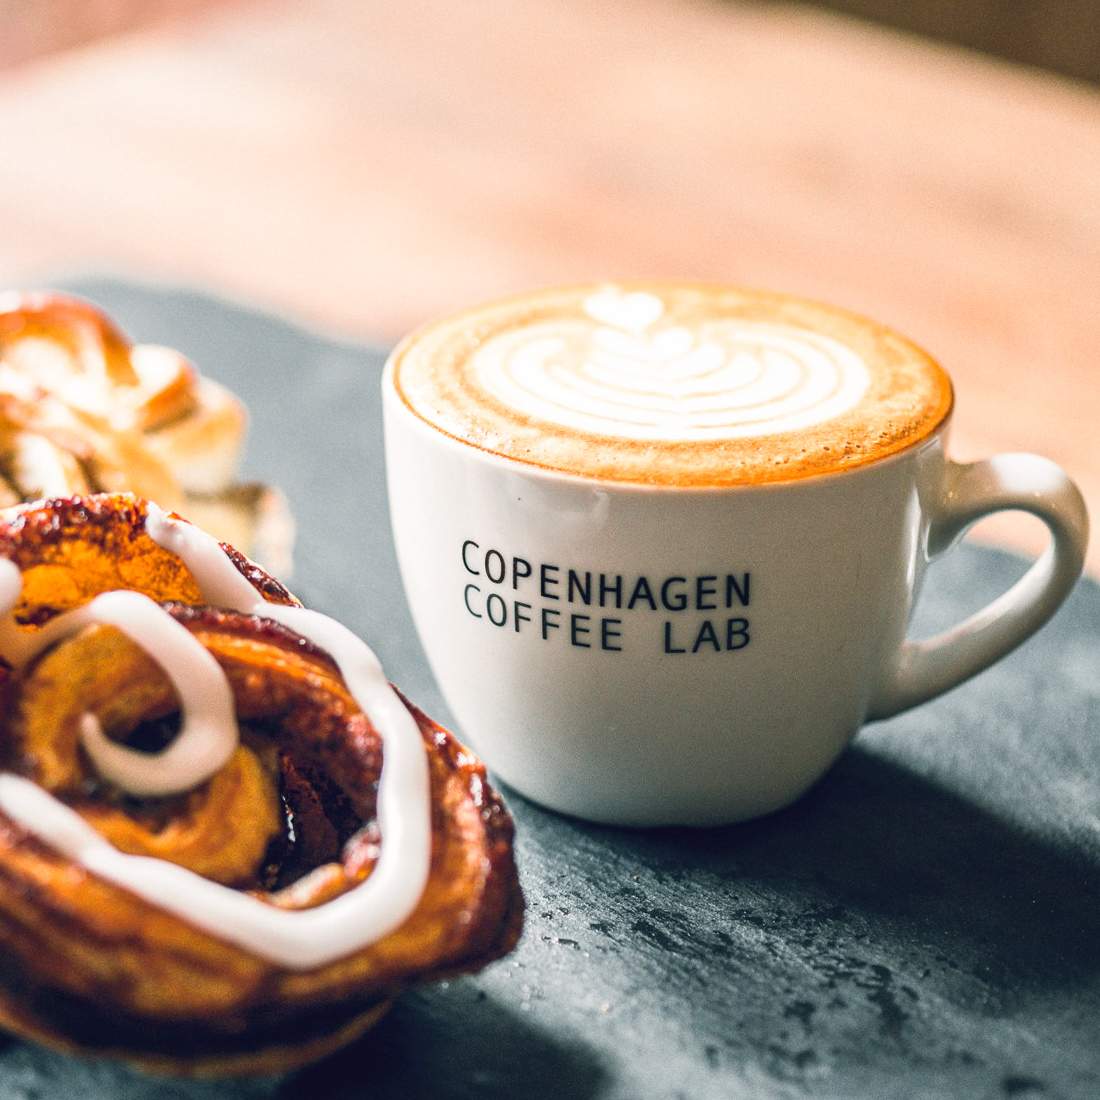 Copenhagen Coffee Lab in Hamburg-Eppendorf